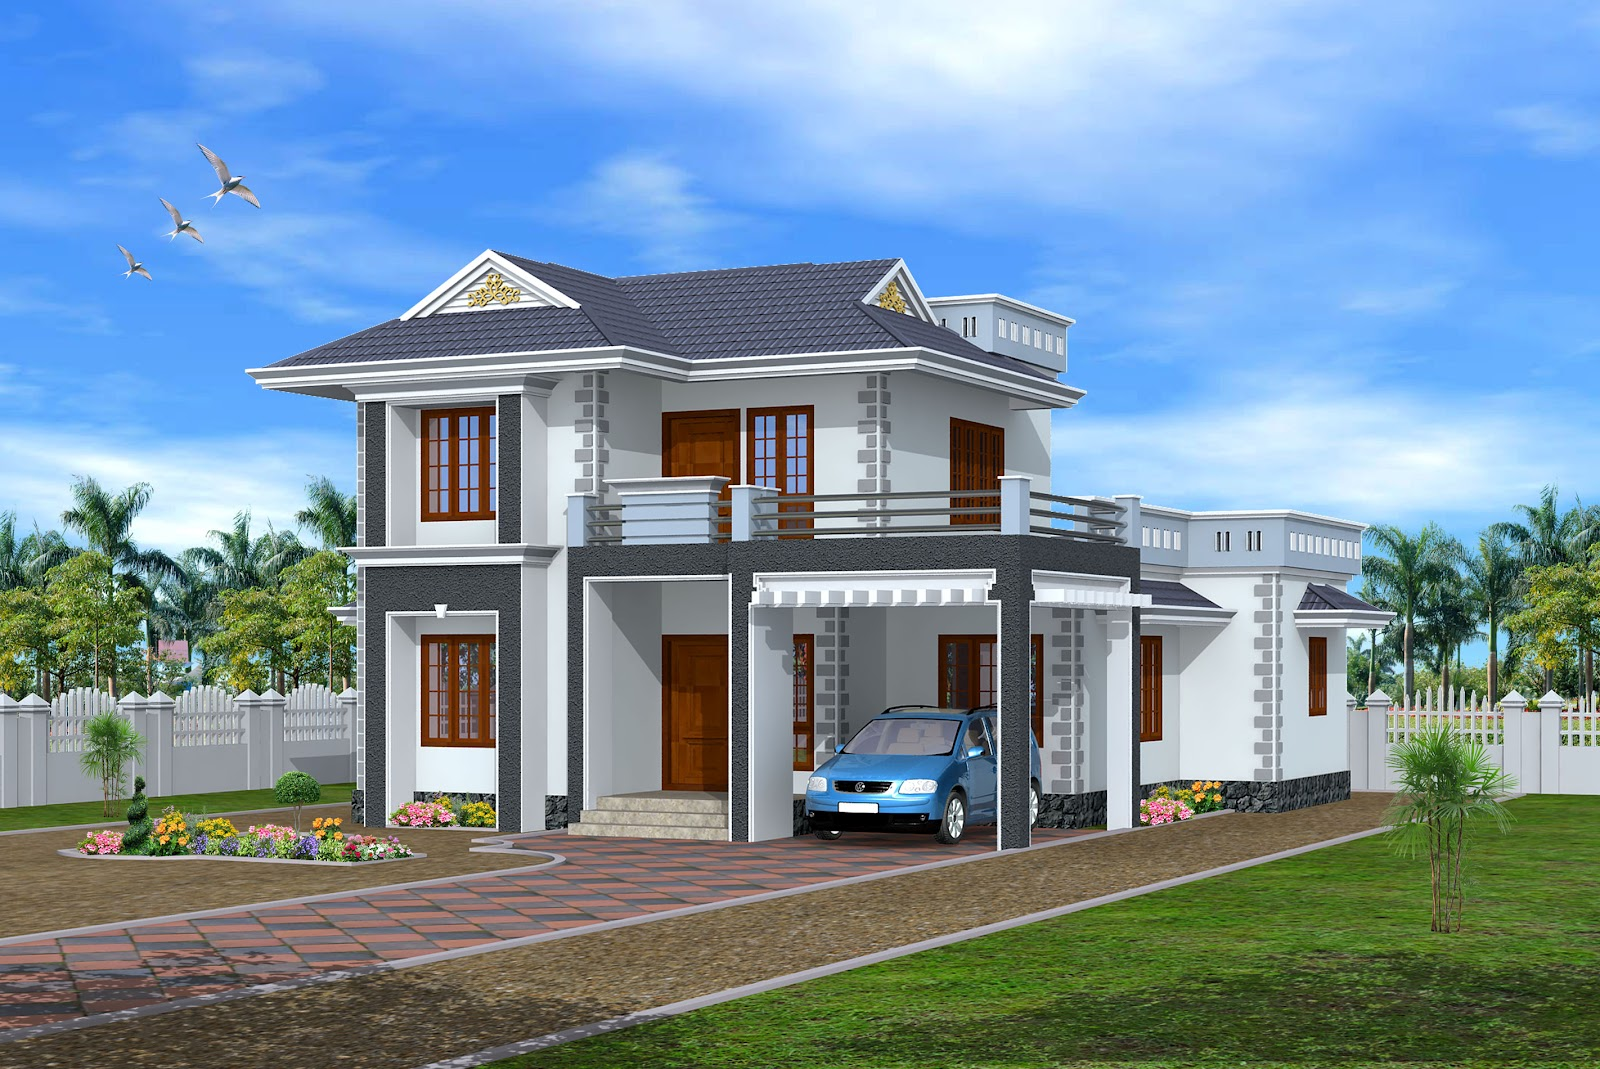 New home designs latest modern homes exterior designs views for House front design